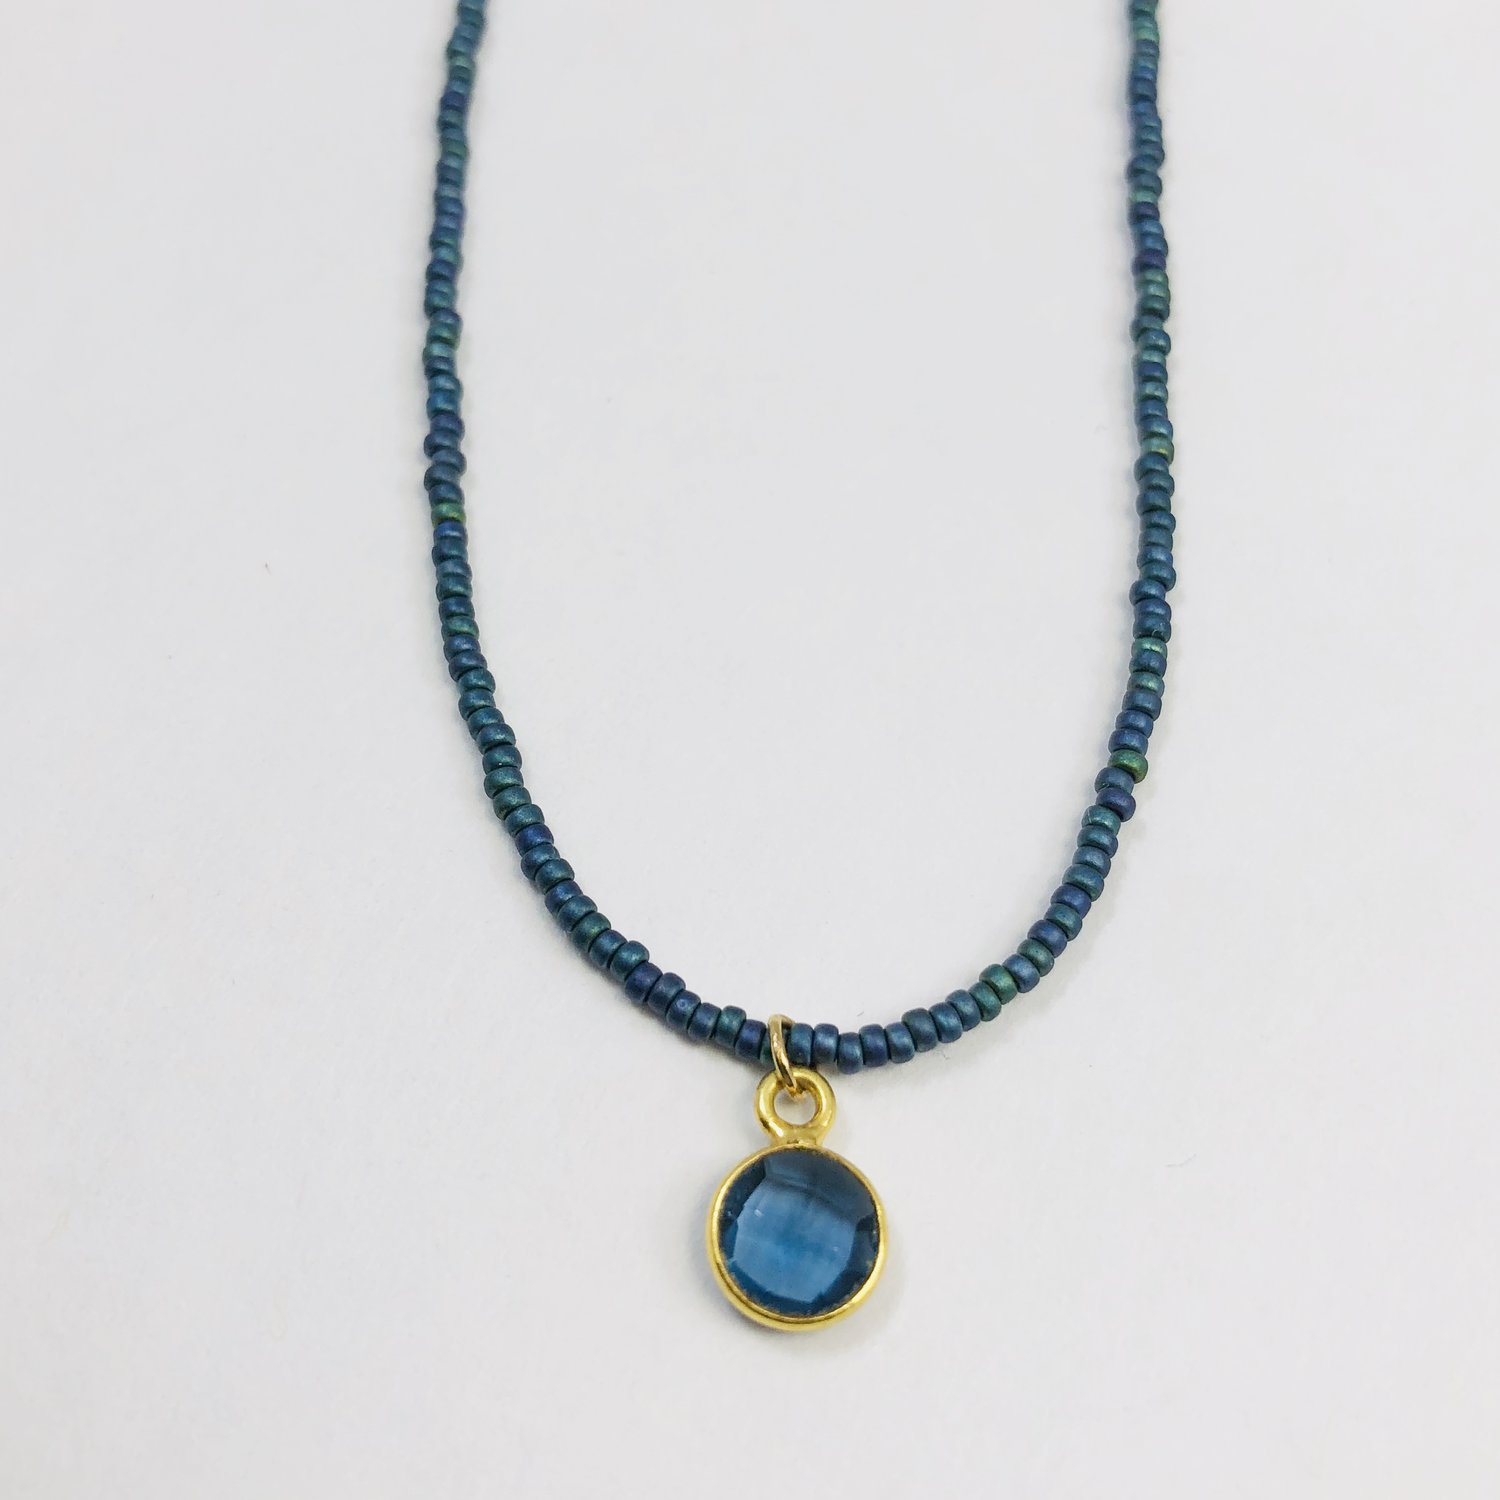 62bfacdbd Qi: Deep Blue Chakra Triple Beaded Necklace Set - One with small blue  Tourmaline, one with small round Kyanite pendant and one with gold nuggets